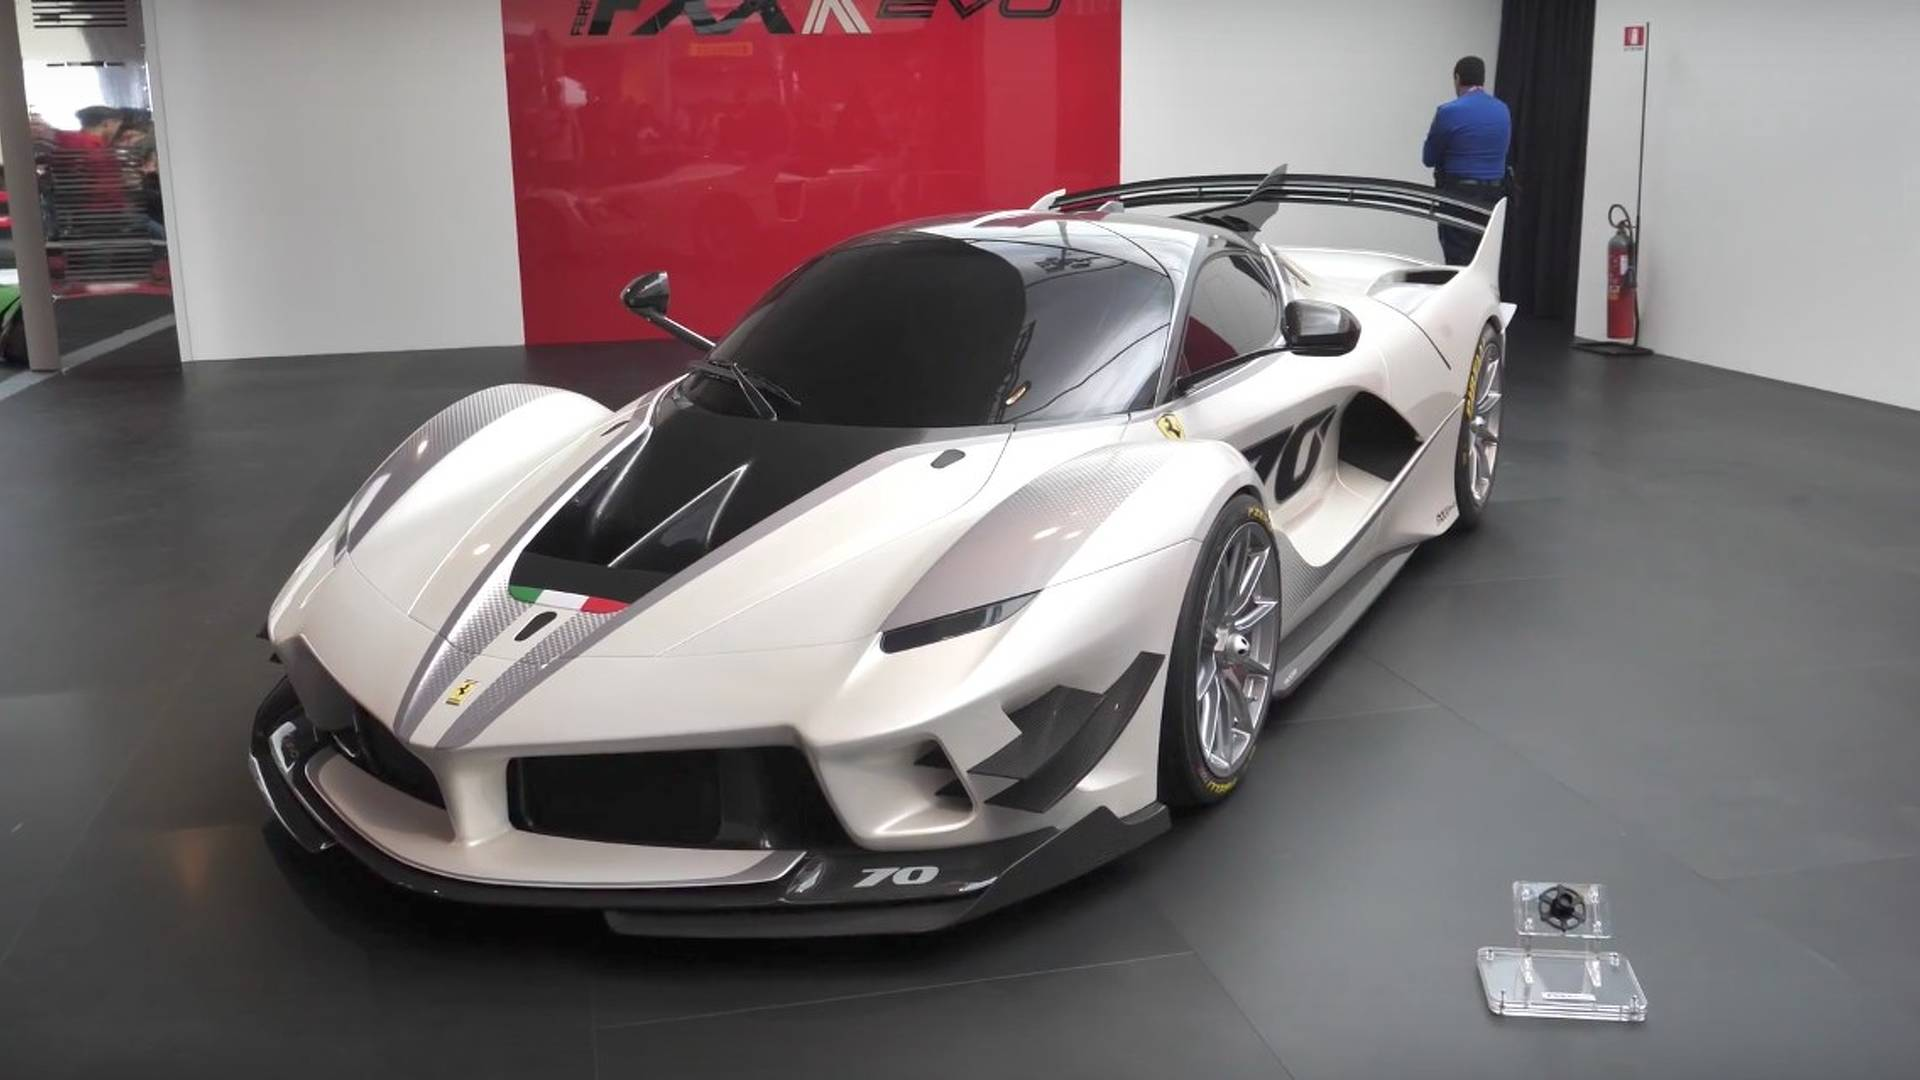 Laferrari For Sale >> Take A Closer Look At The Attention-Grabbing Ferrari FXX K Evo